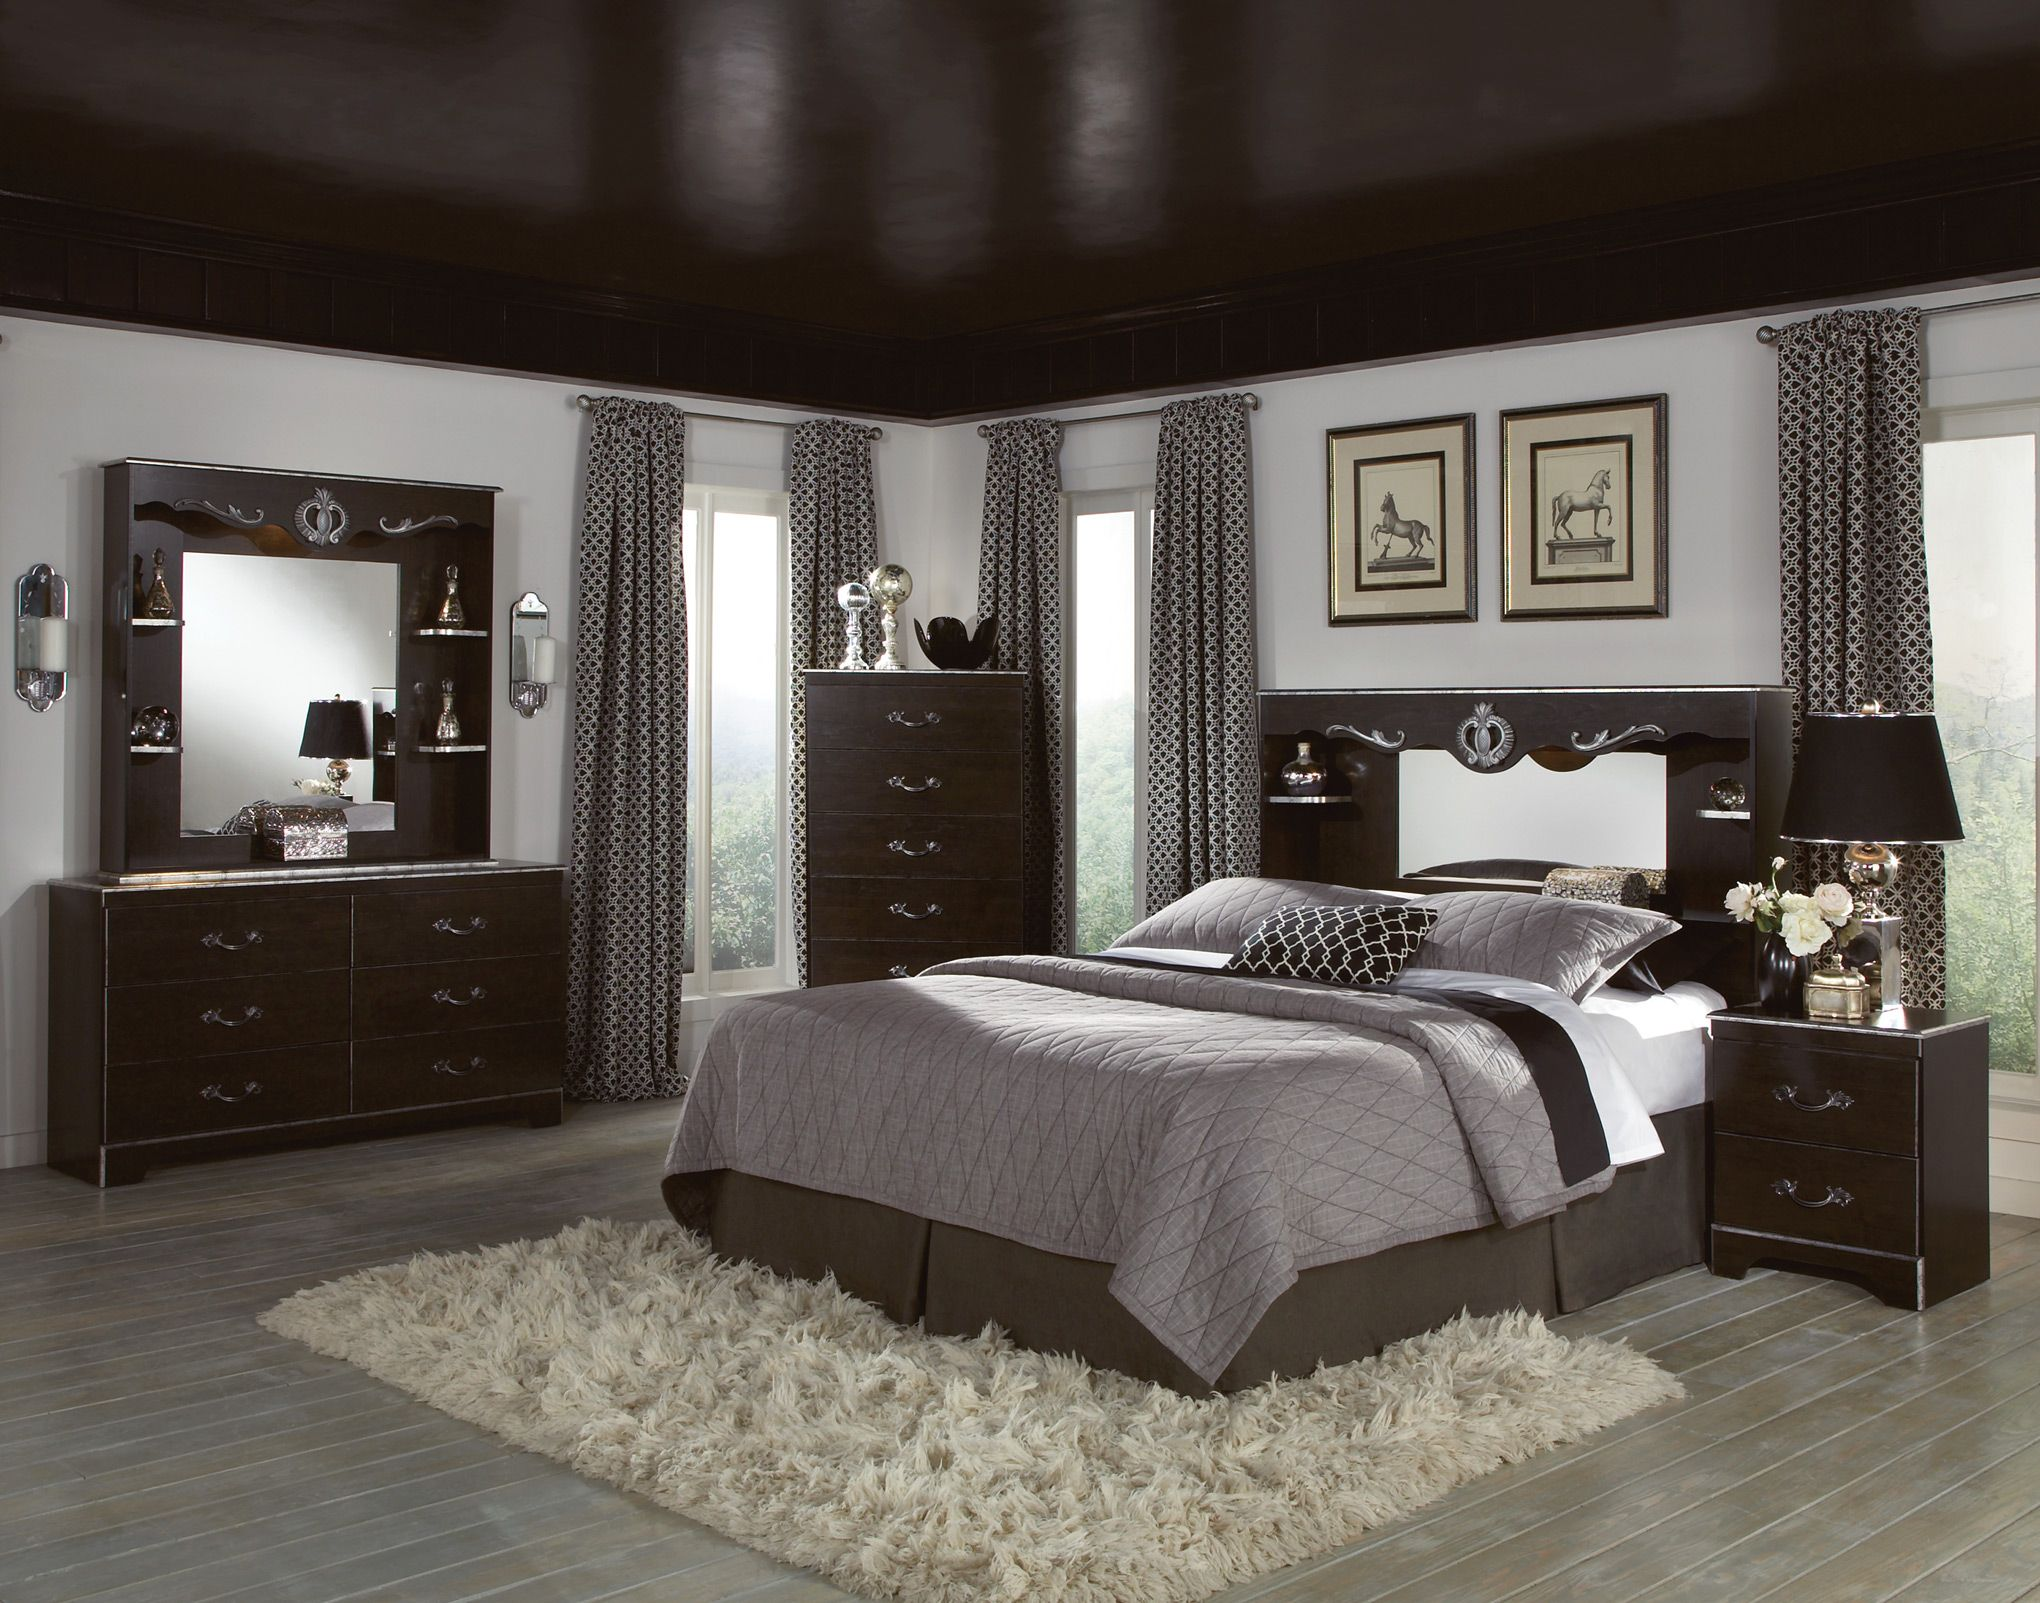 Pin By Mayo On Home Decor Gray Master Bedroom Dark Brown Furniture Dark Bedroom Furniture